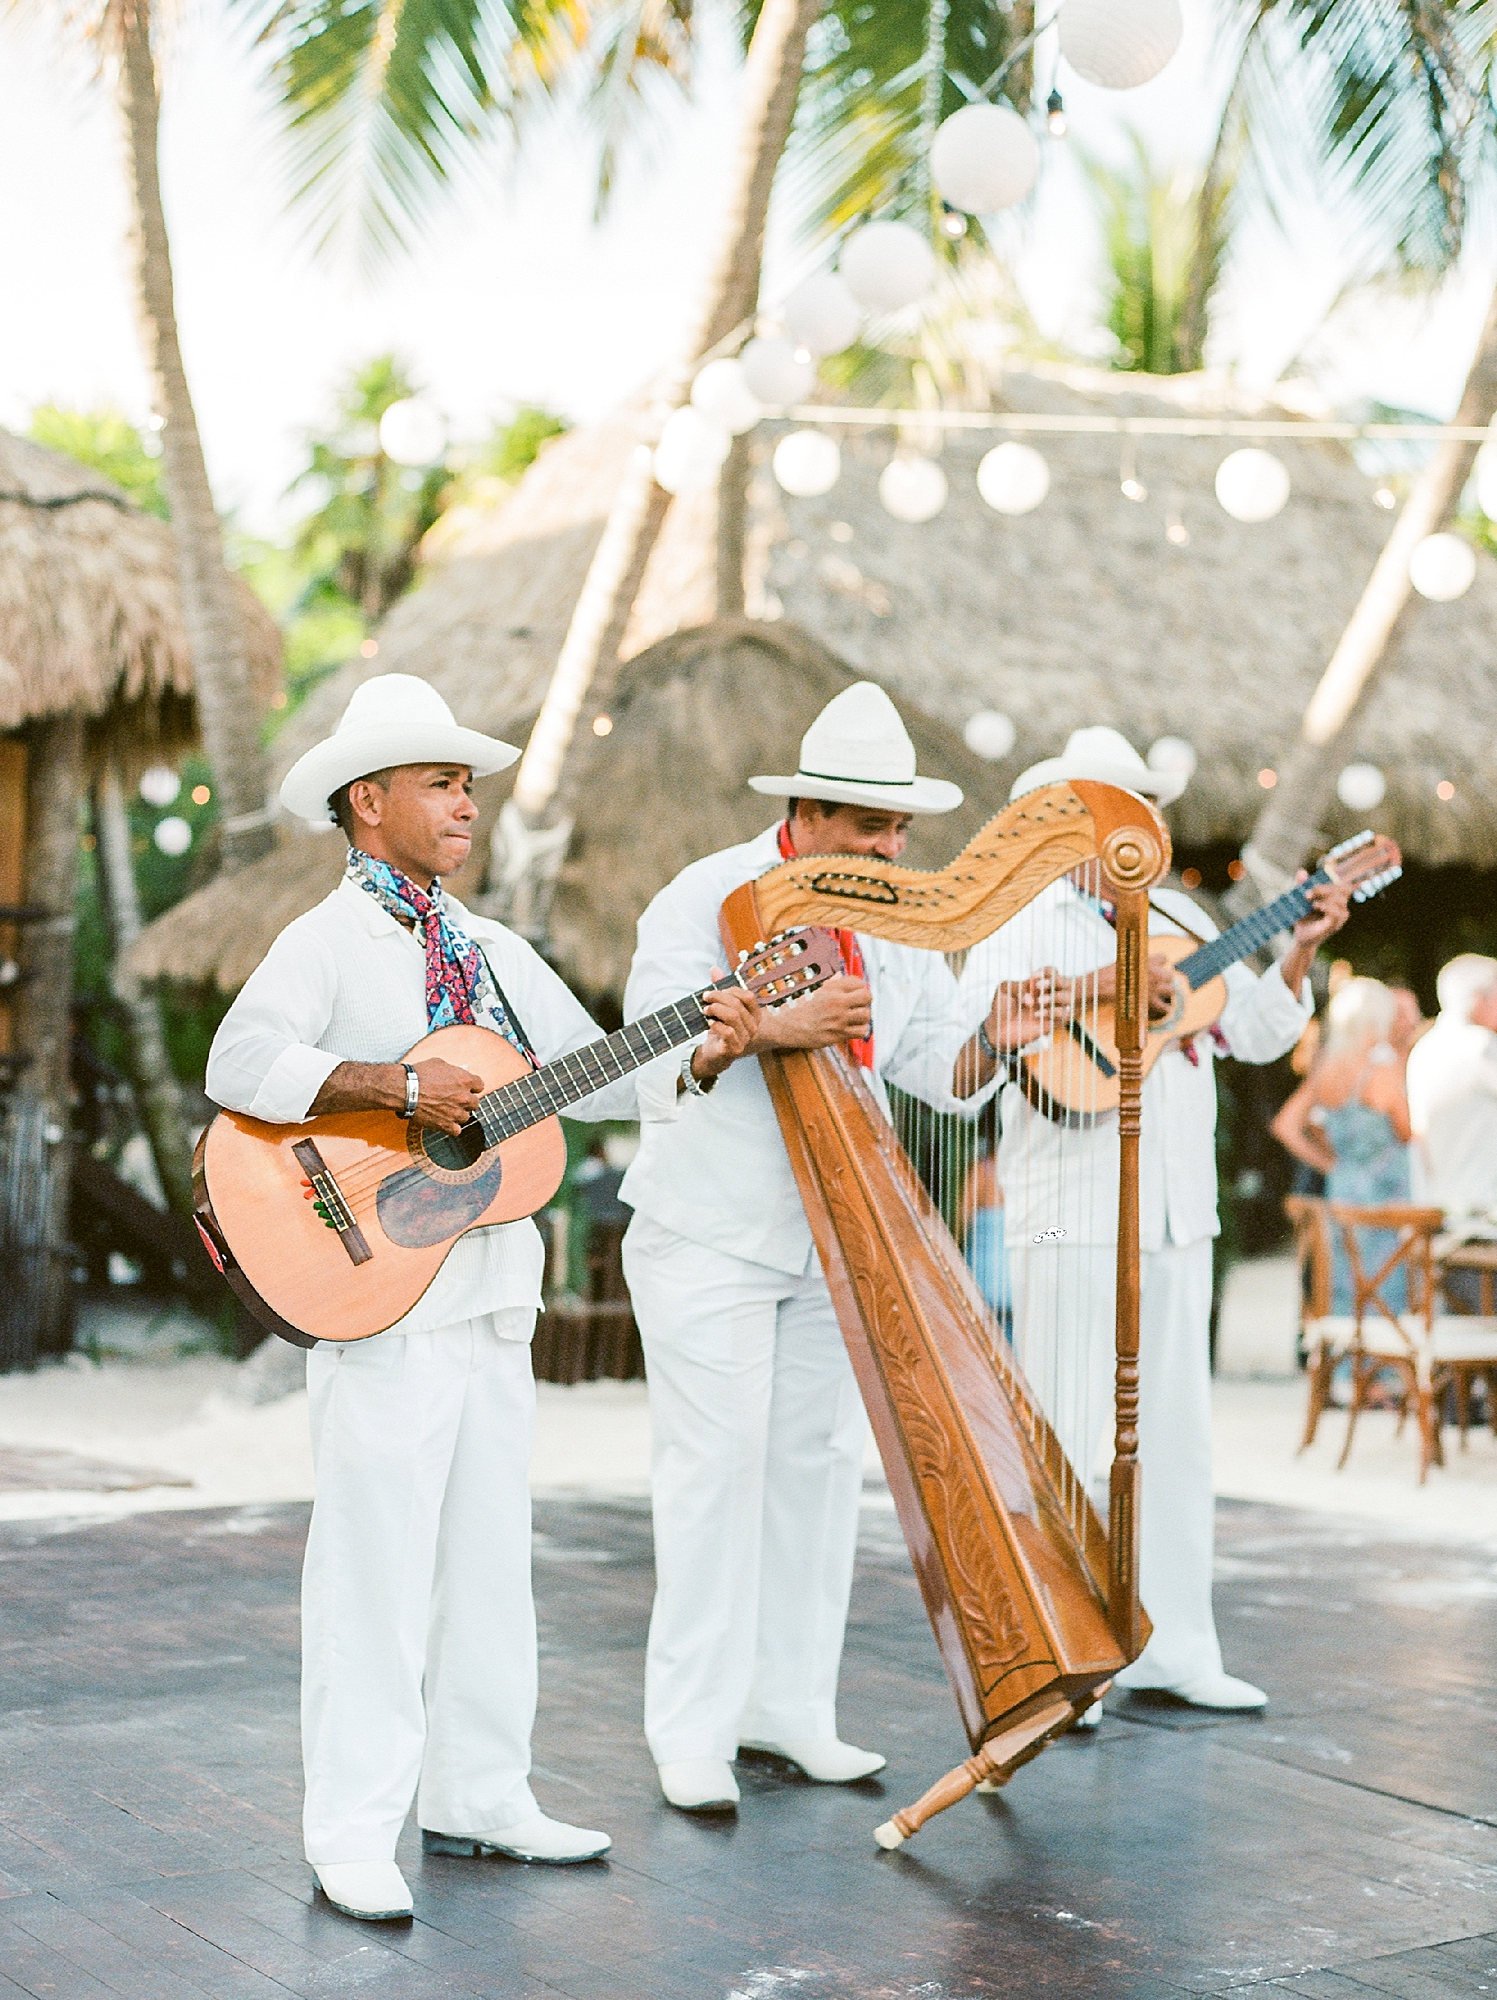 Stylish and Candid Destination Film Wedding Photography in Tulum Mexico by Magdalena Studios 0050